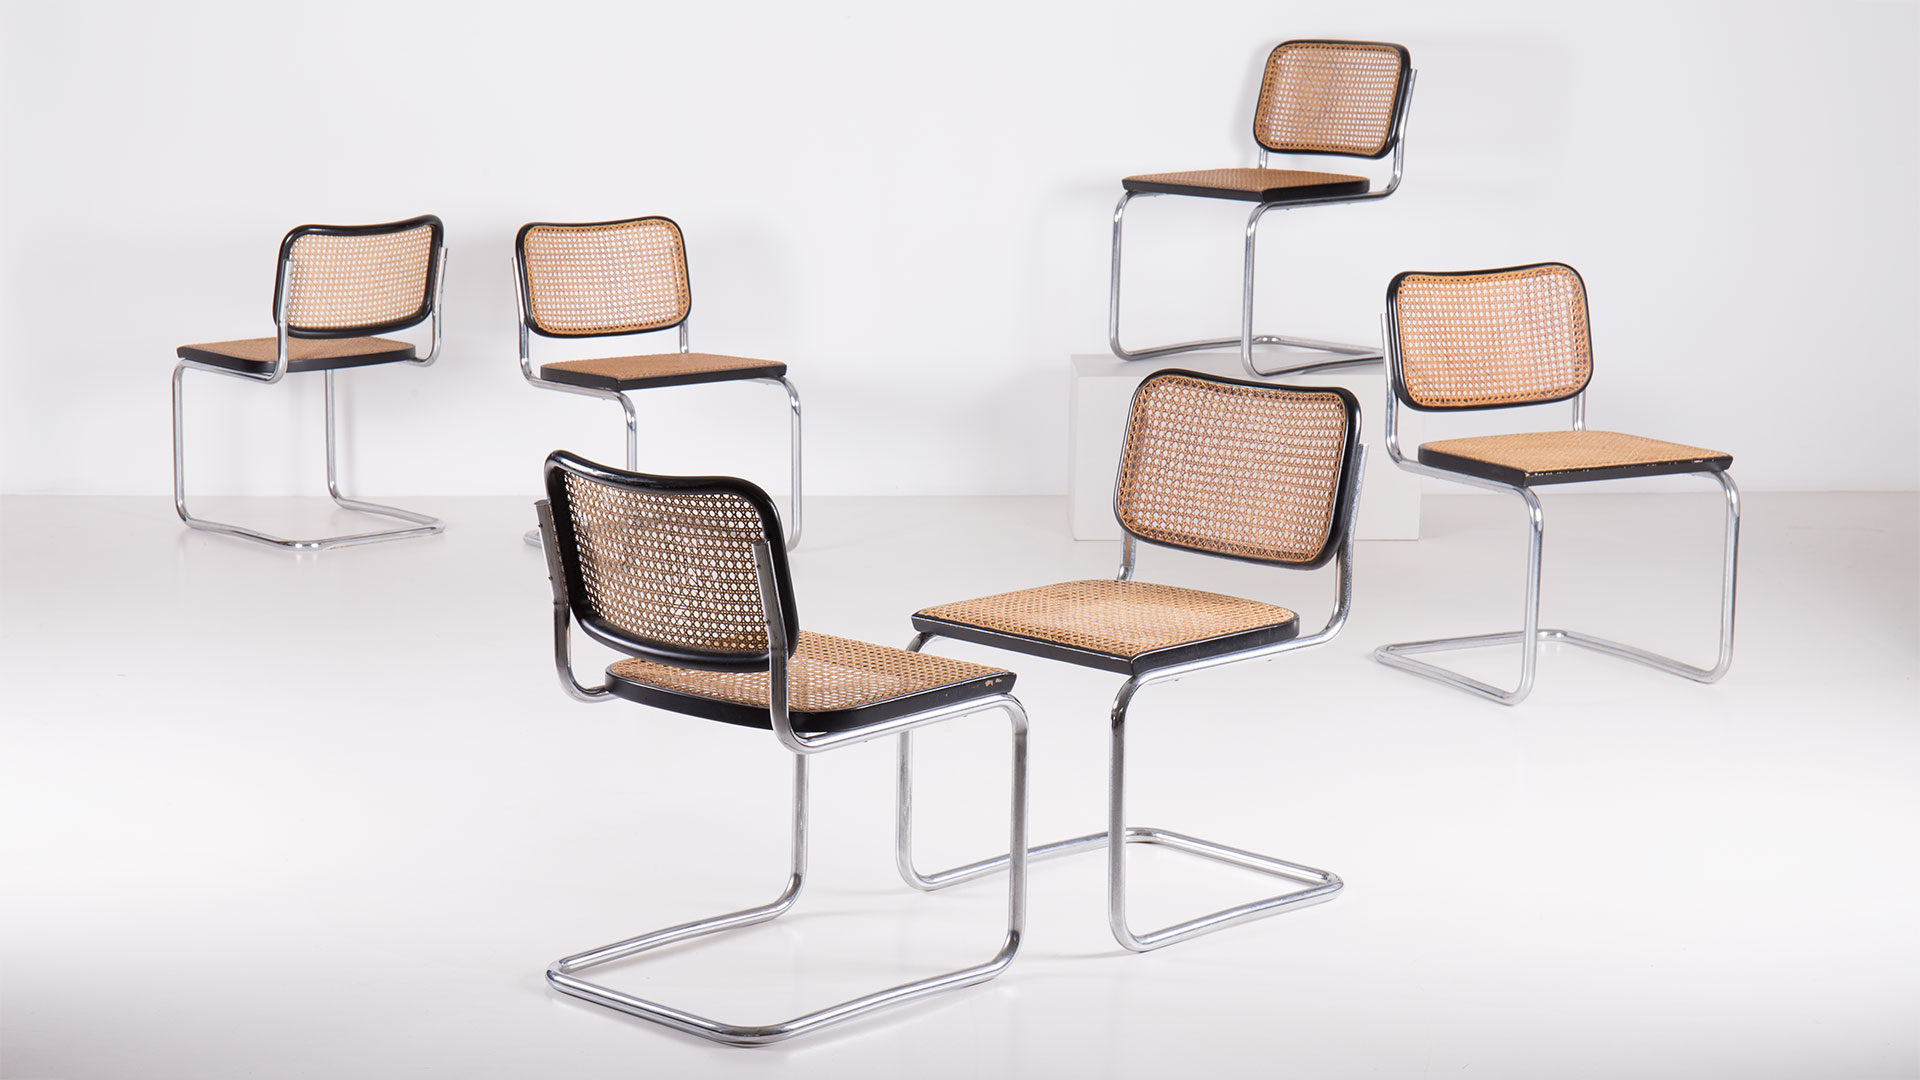 Cesca chairs by Marcel Breuer | Paradisoterrestre